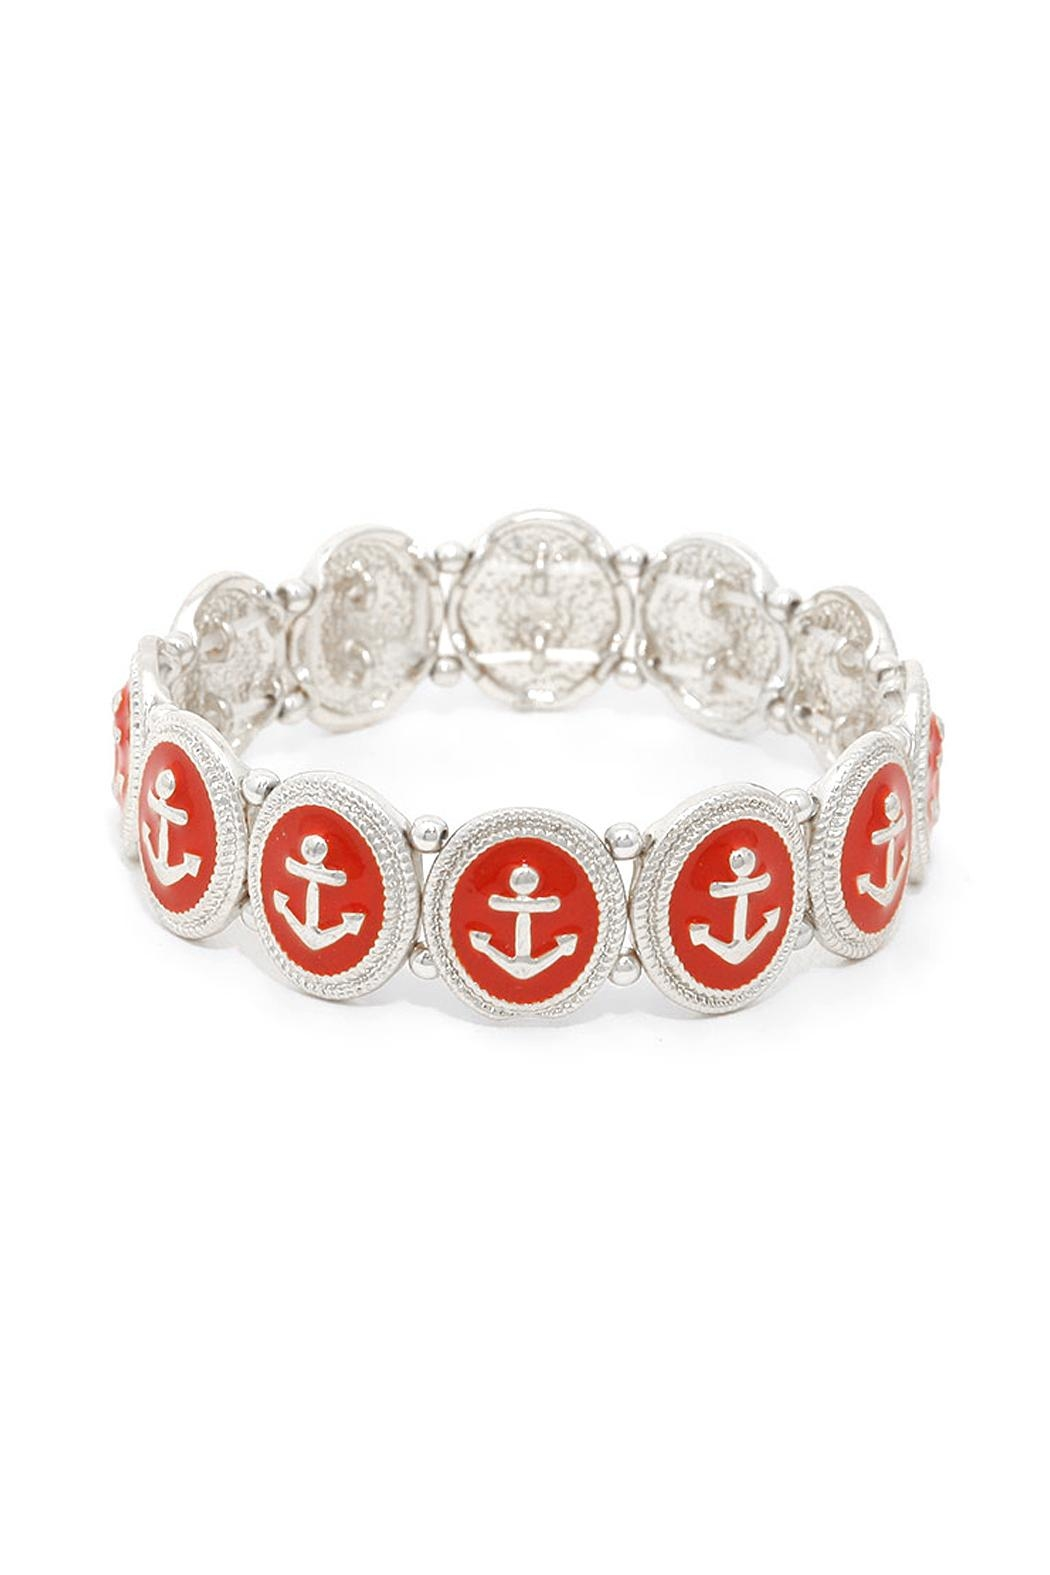 Wild Lilies Jewelry  Red Anchor Bracelet - Main Image